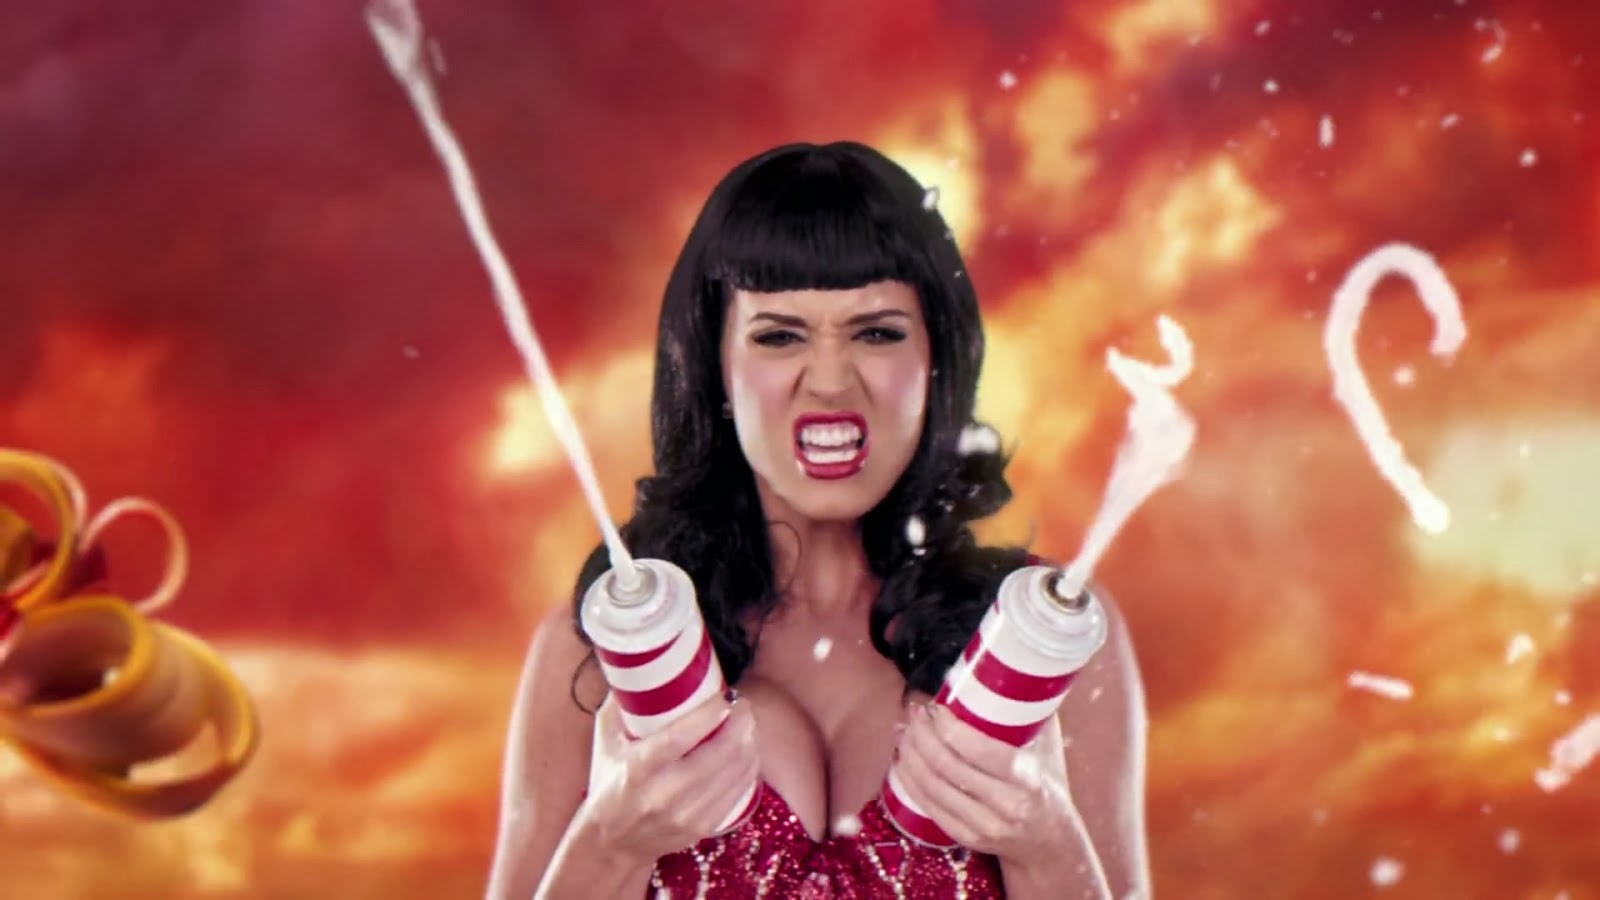 Wallpaper Katy Perry Brunette Singer California Gurls: Sexiest And Beautiful Singer Katy Perry